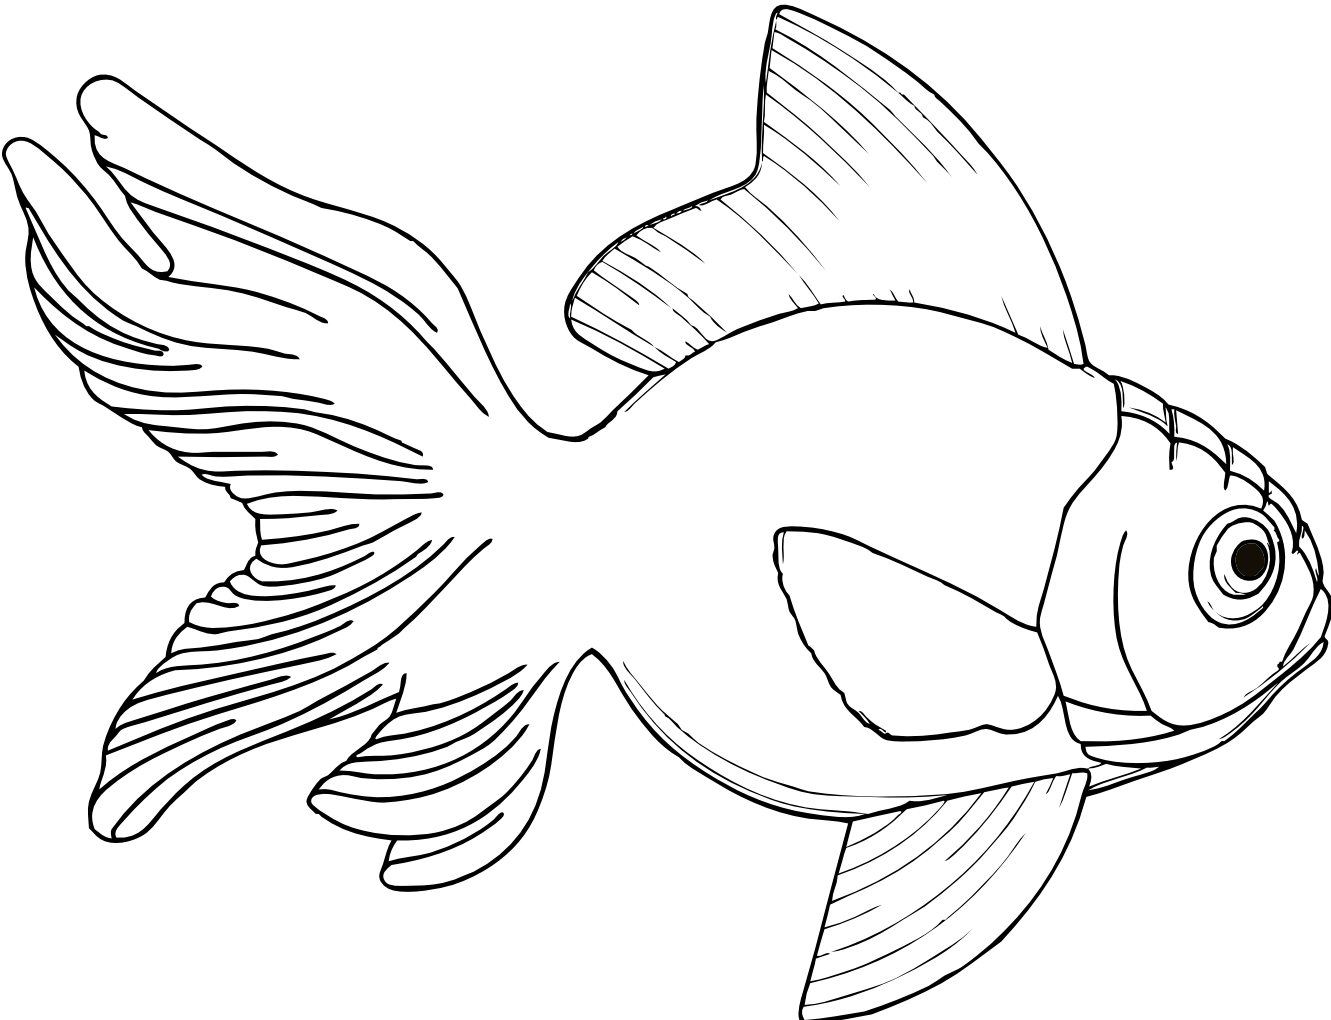 Fish Line Art - ClipArt Best